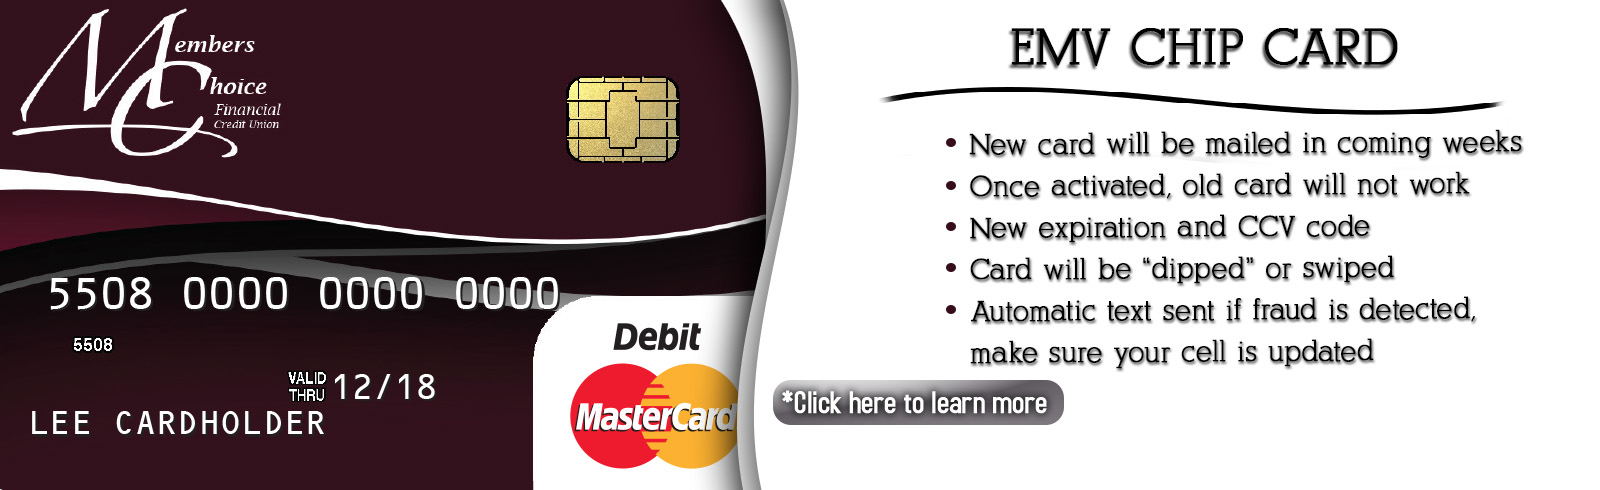 EMV Chip Card